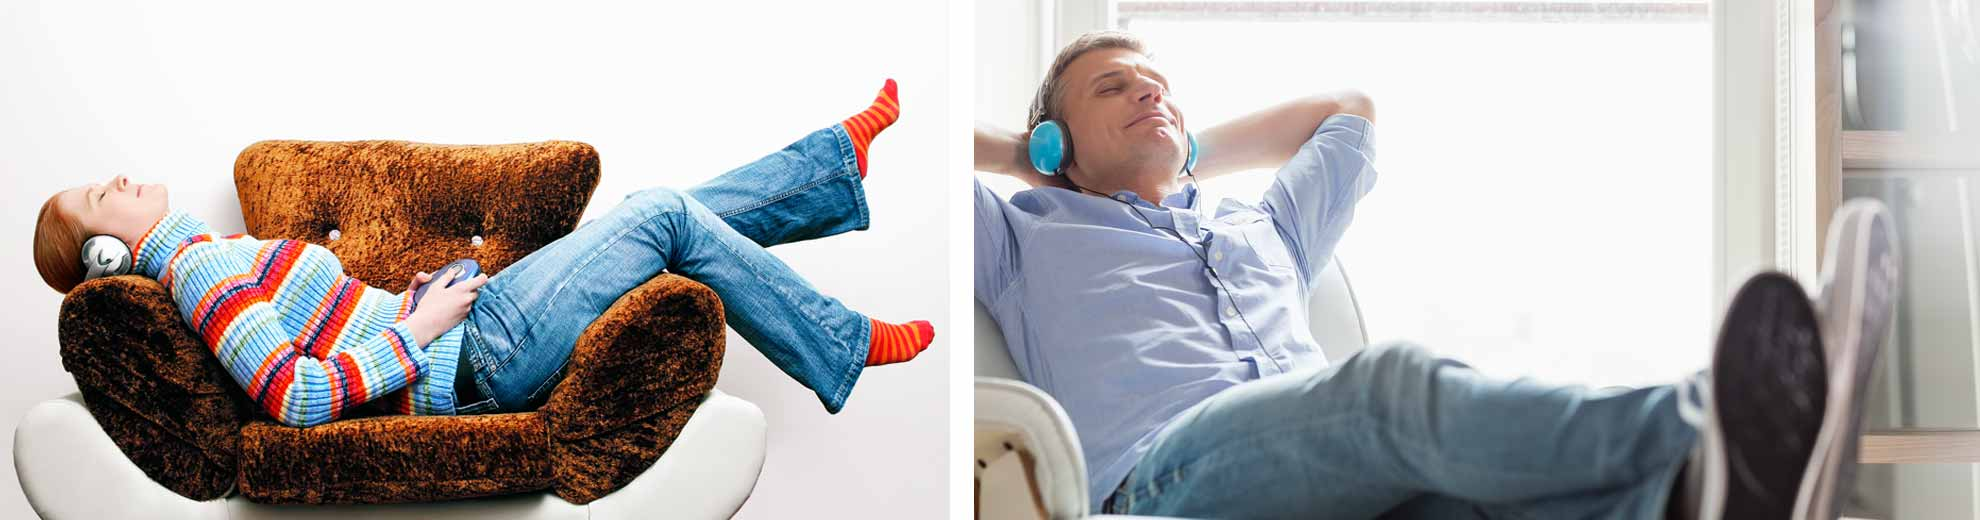 woman-and-man-listening-to-personalized-hypnosis-recordings